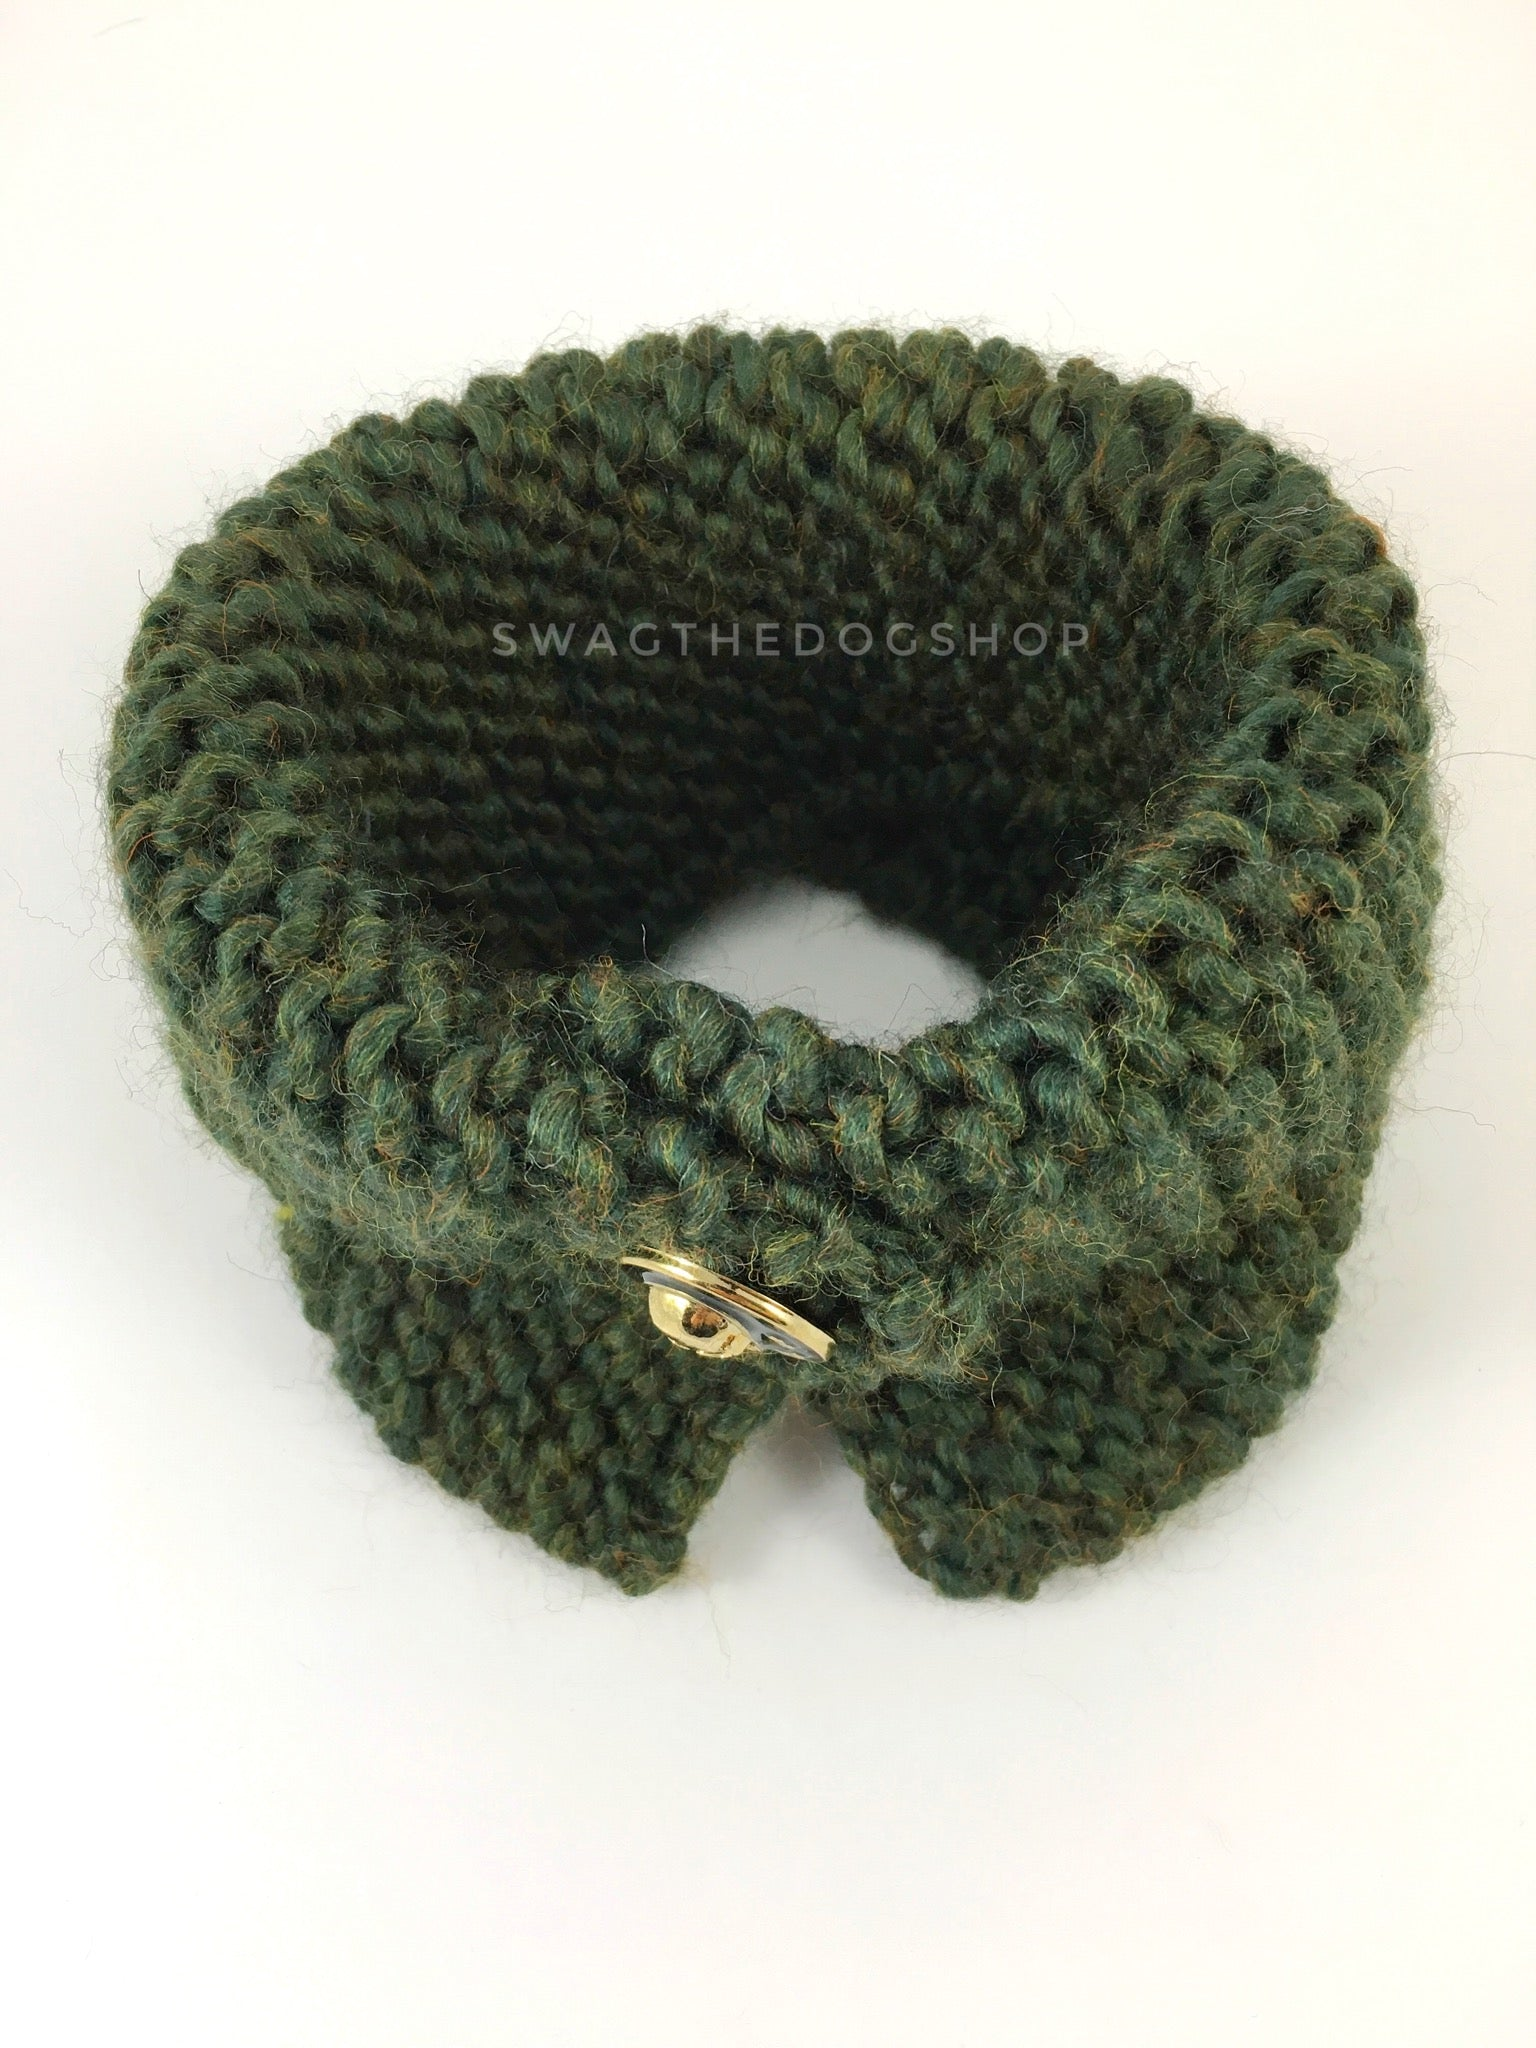 Army Green Swagsnood - Product Above View. Army Green Color Dog Snood with Accent Button